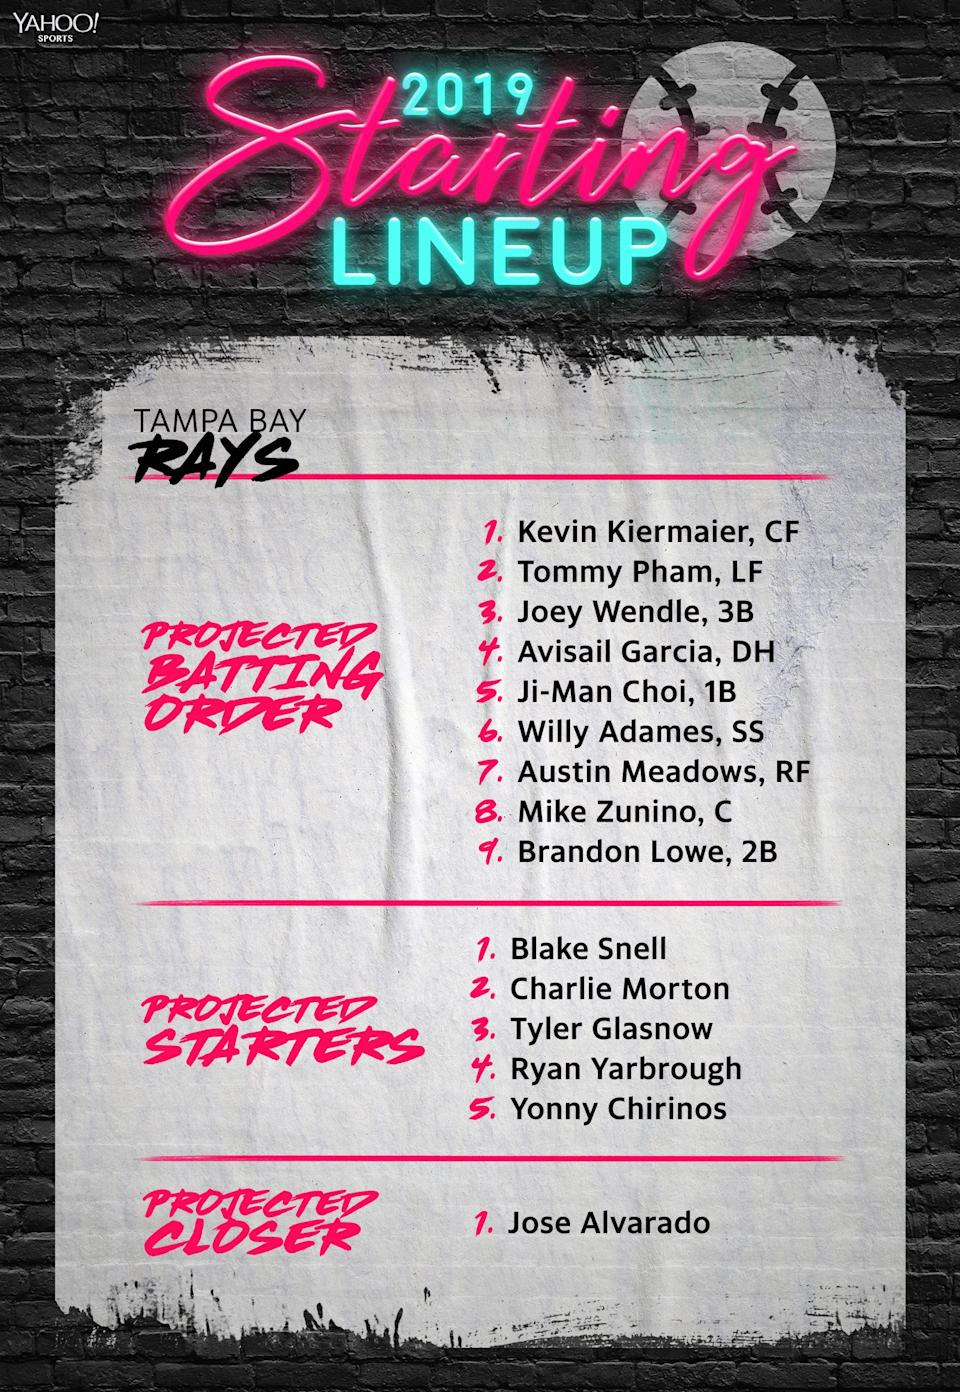 The Tampa Bay Rays projected lineup for 2019. (Yahoo Sports)